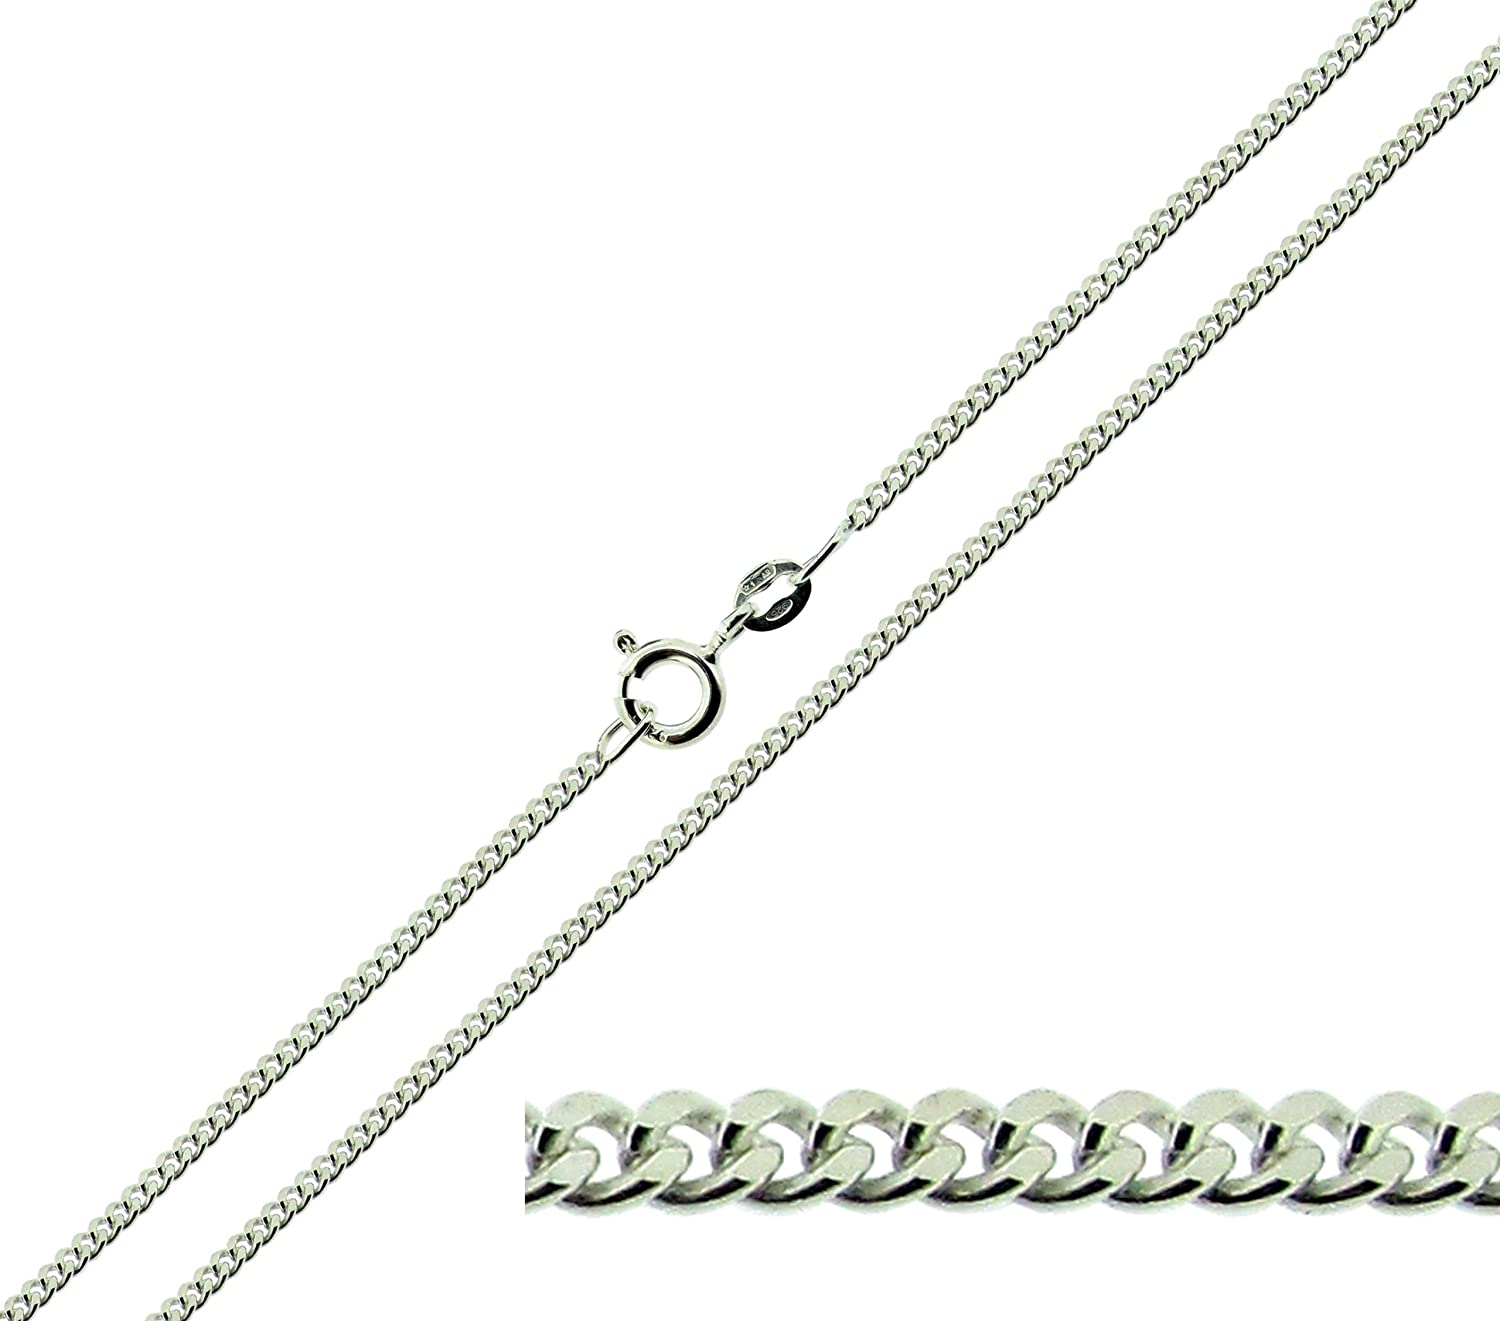 available in 16 to 40 Solid 925 Sterling Silver Large Ingot Pendant With Custom Hallmark 30mm x 16mm and Optional 1.8mm Wide Diamond Cut Curb Chain In Gift Box